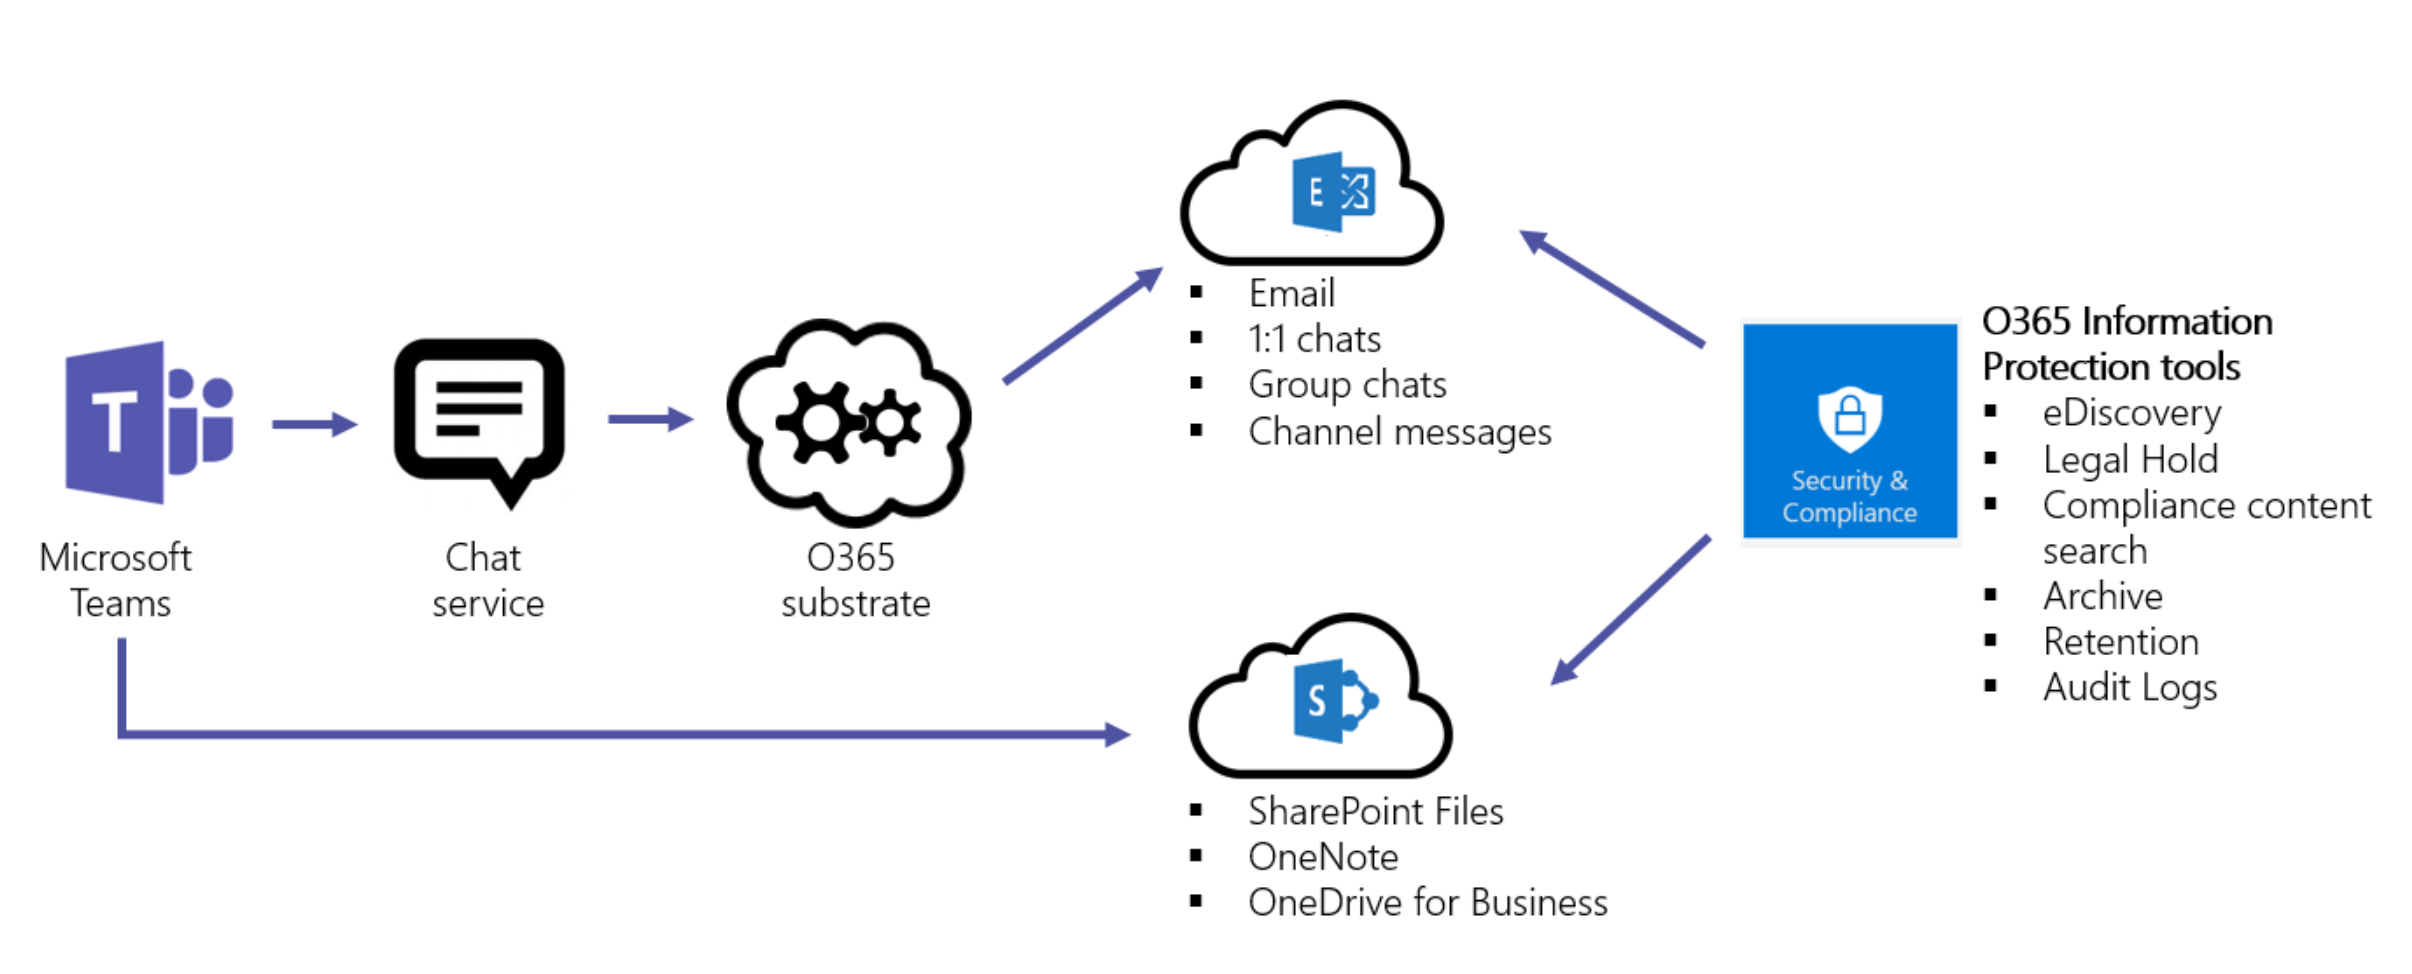 overview_of_security_and_compliance_in_microsoft_teams_image1-1